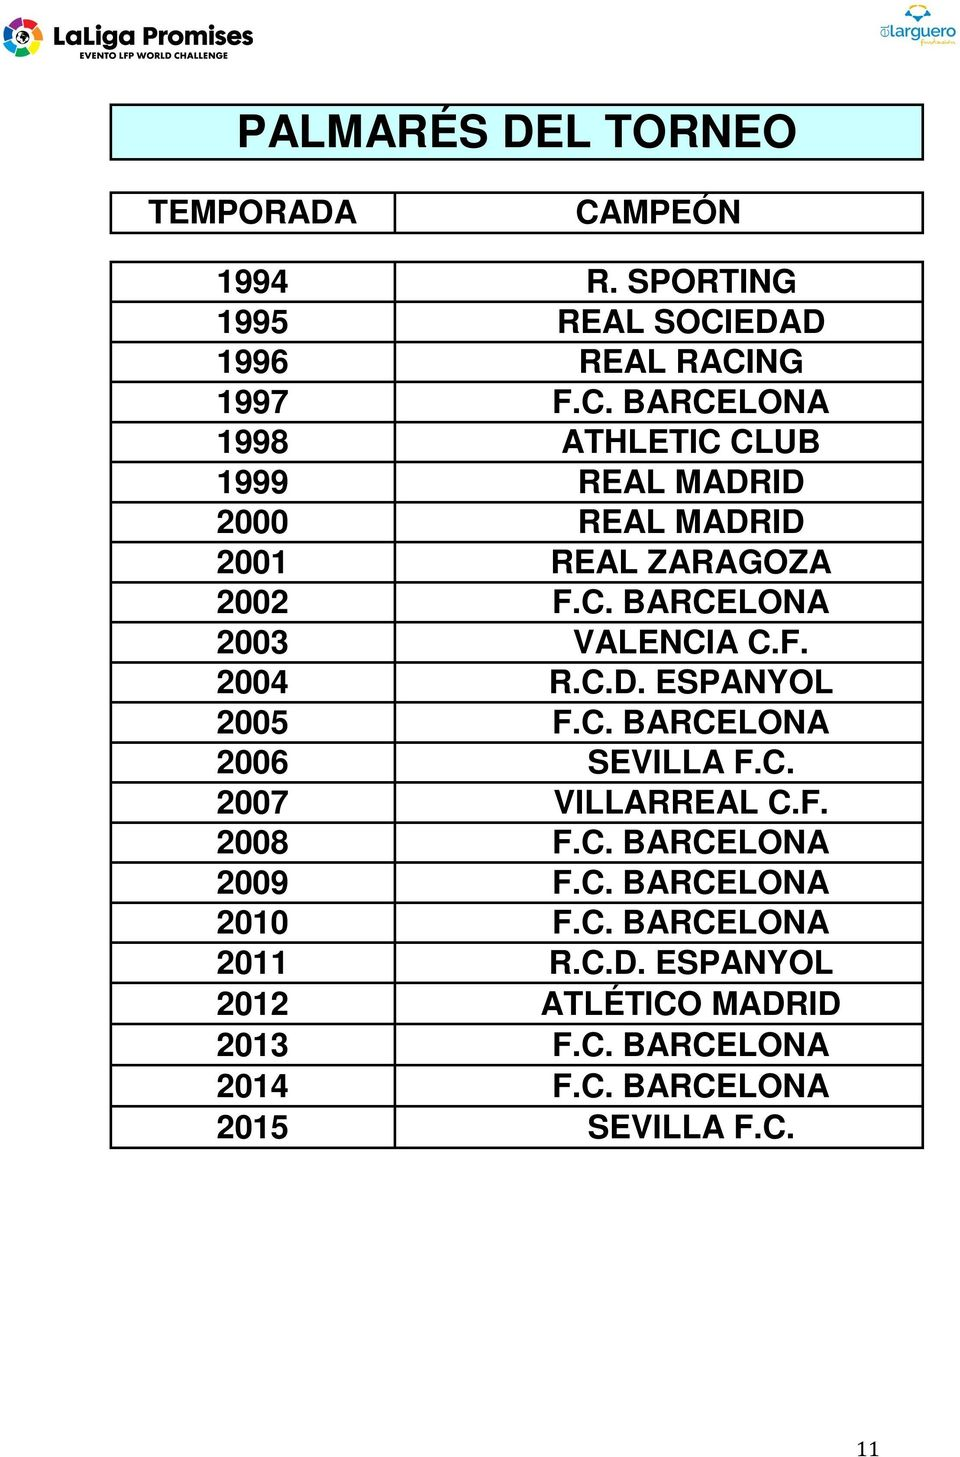 EDAD 1996 REAL RACING 1997 F.C. BARCELONA 1998 ATHLETIC CLUB 1999 REAL MADRID 2000 REAL MADRID 2001 REAL ZARAGOZA 2002 F.